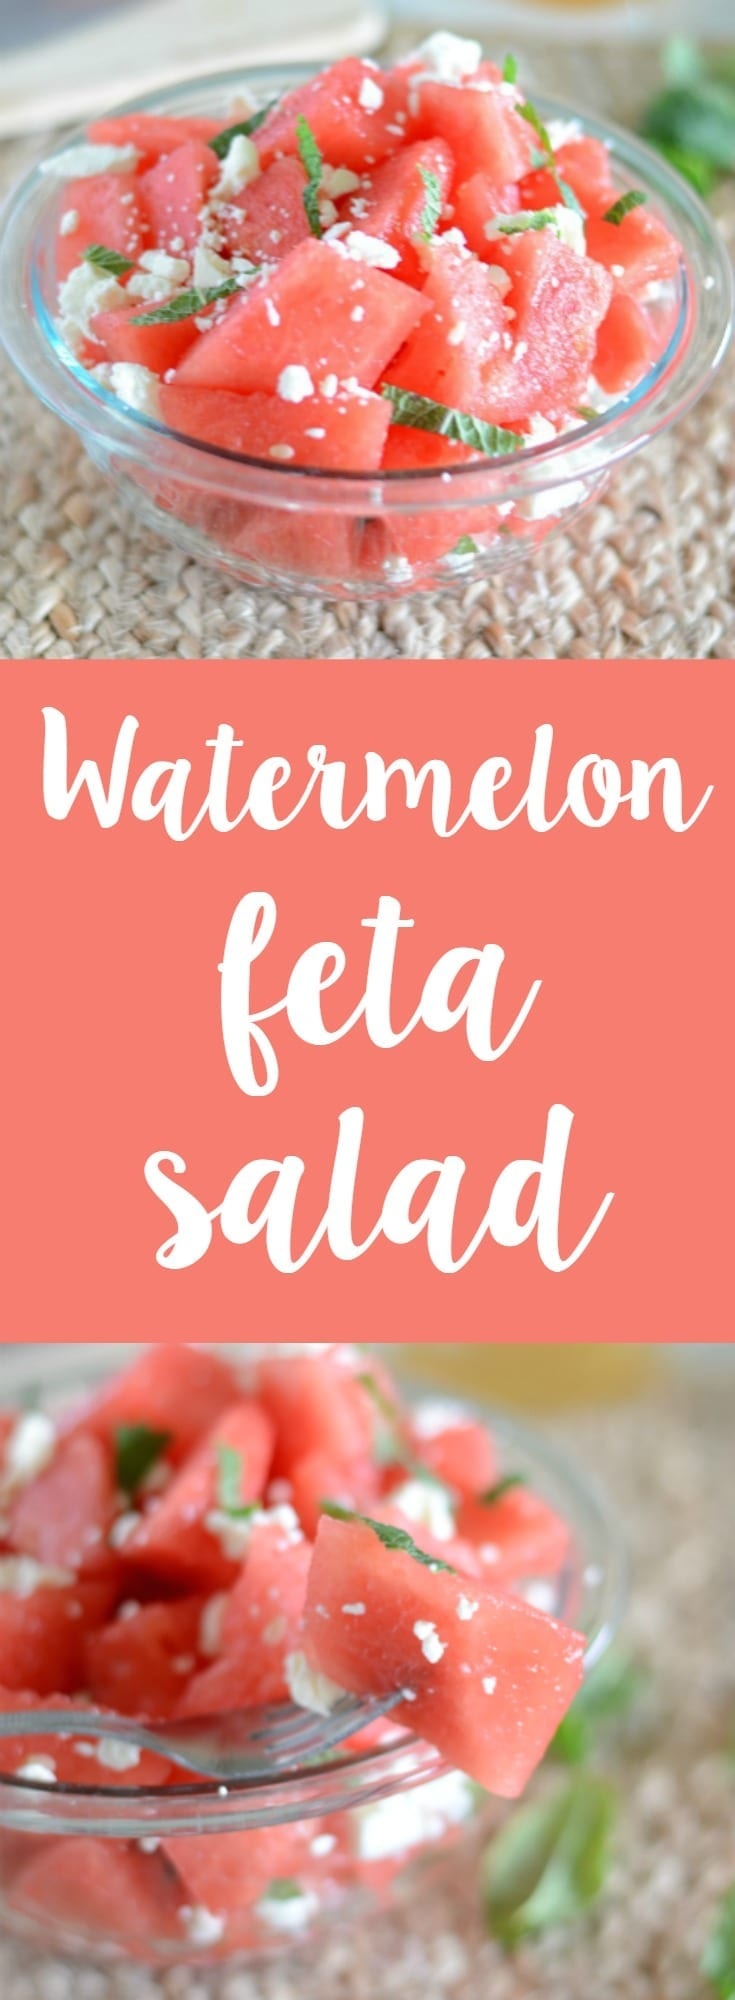 Watermelon feta salad! The perfect side or snack for any summer BBQ! So easy to make and everyone will love it